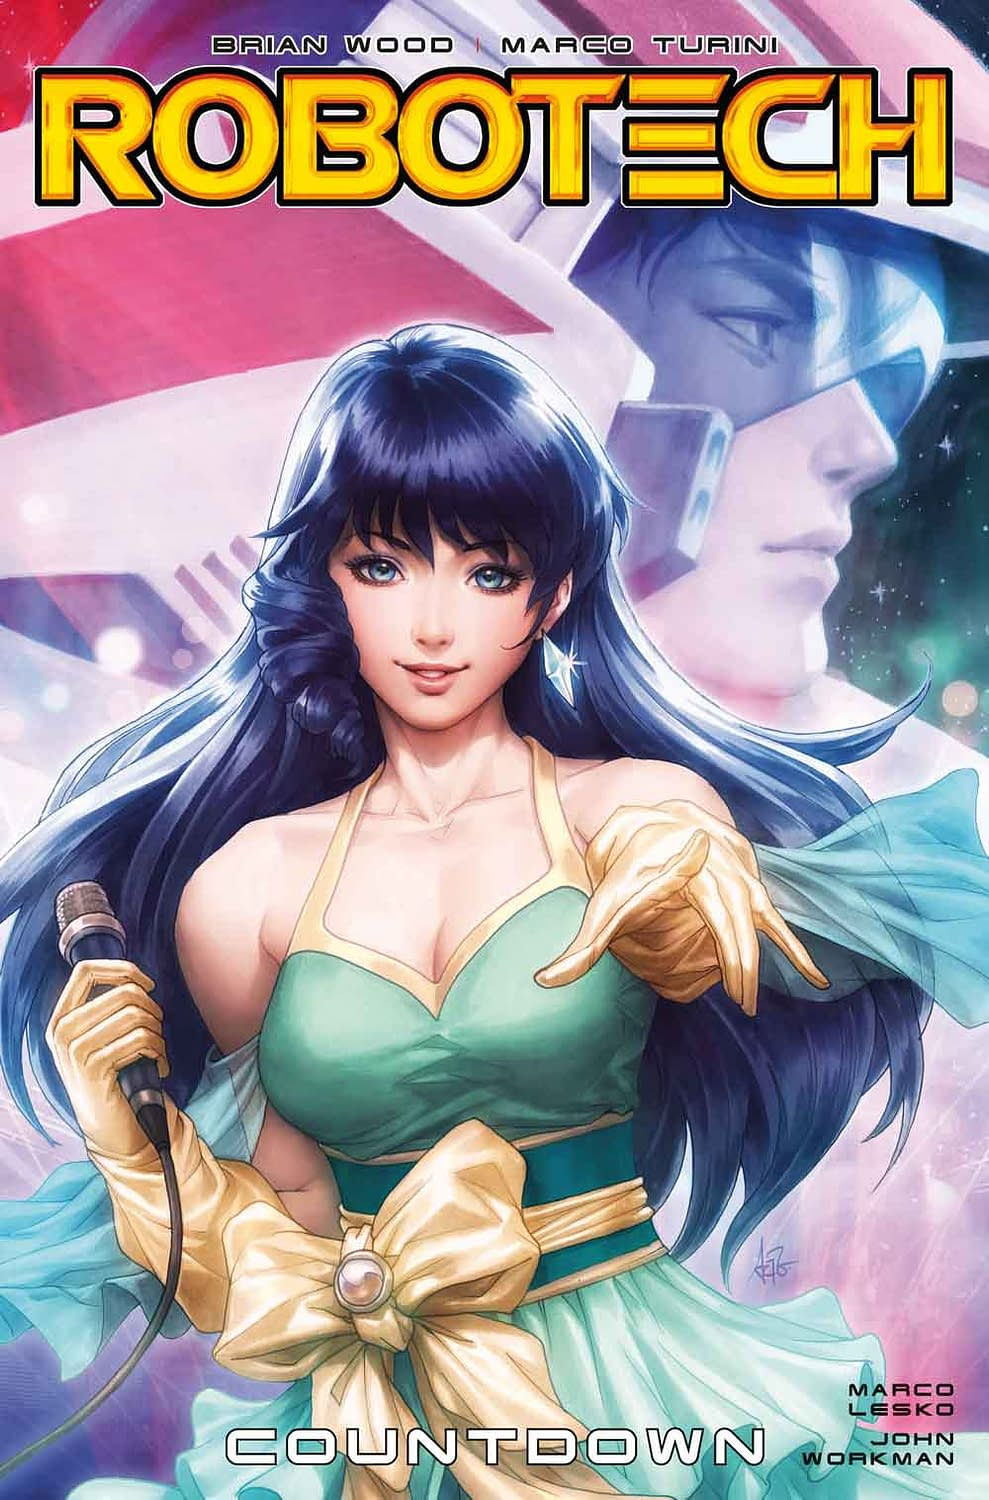 Titan To Kill Off Major Character Four Issues Into Robotech Series